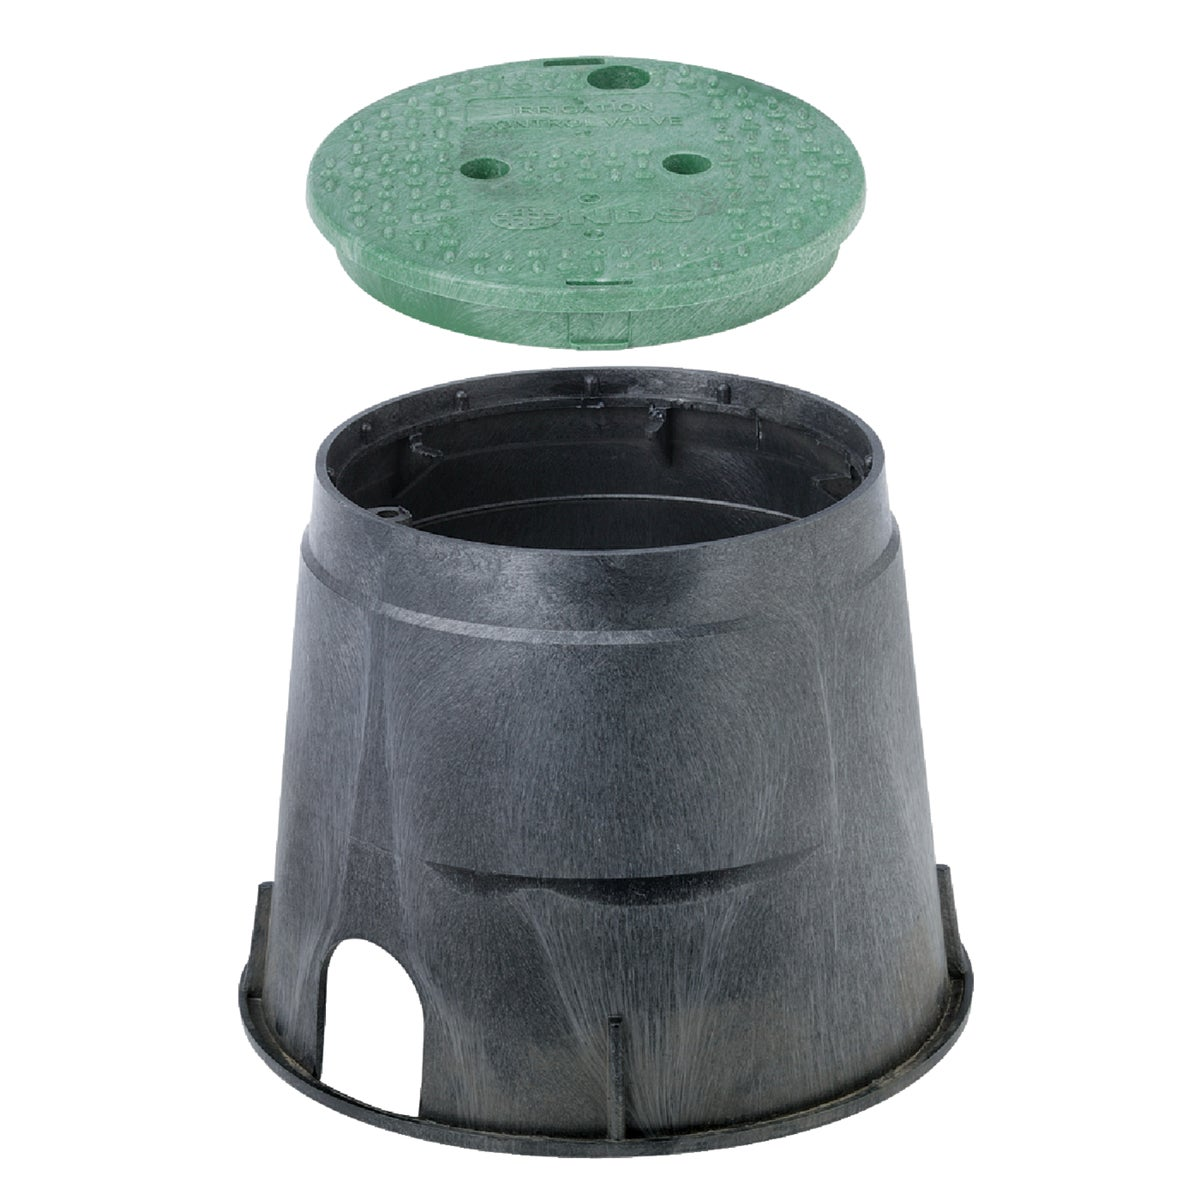 "10"" ROUND VALVE BOX - 111BC by National Diversified"